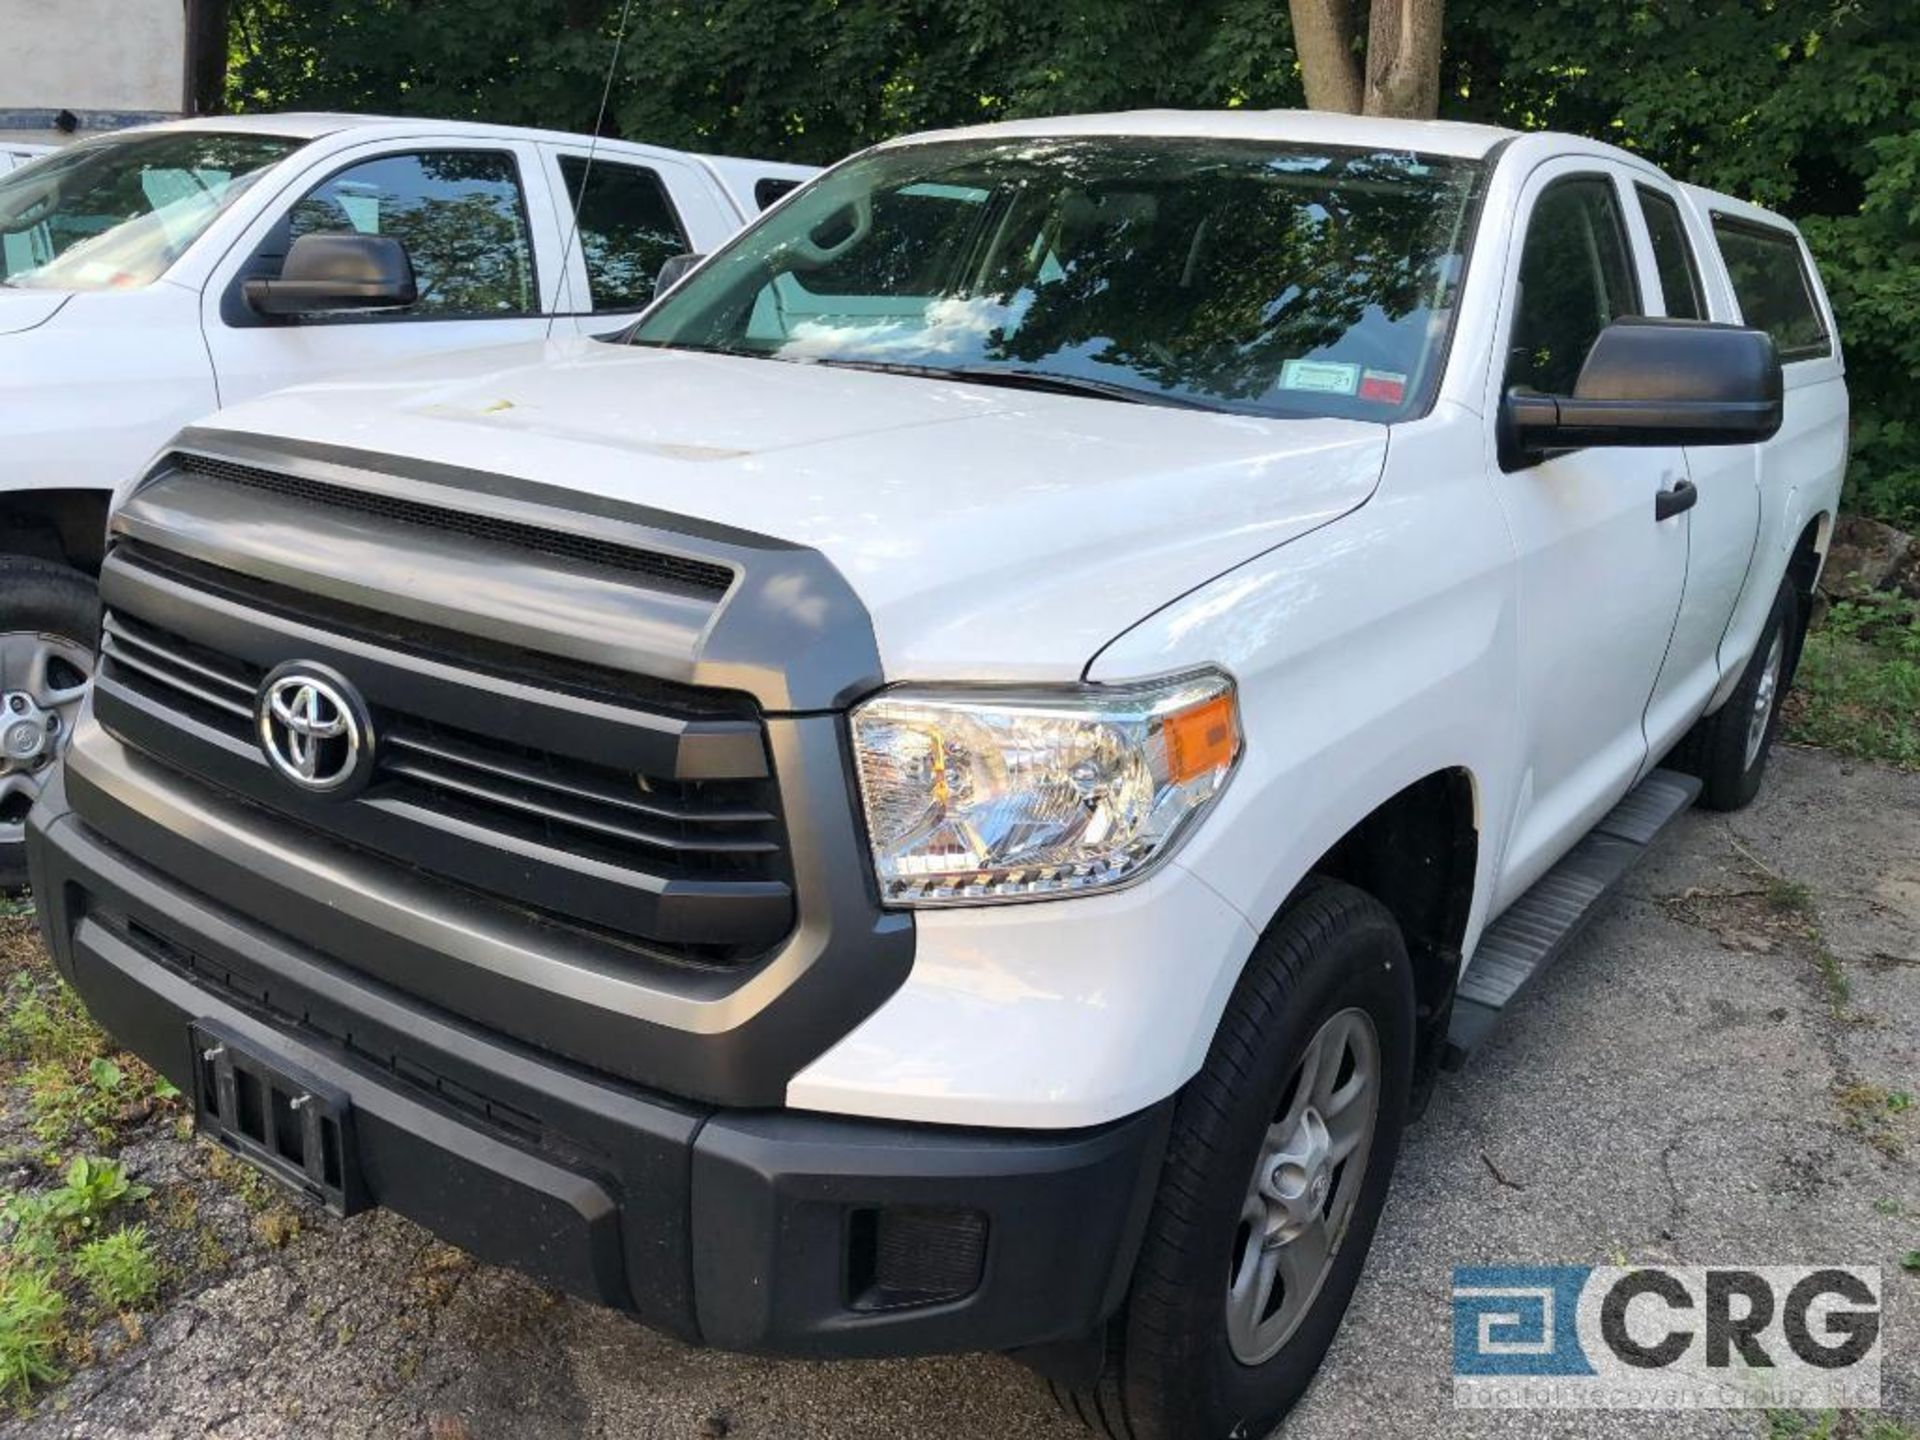 Lot 332 - 2017 Toyota Tundra 4X4 double cab pickup truck with bed cap and toolbox, 47111 miles, I-Force 4.6